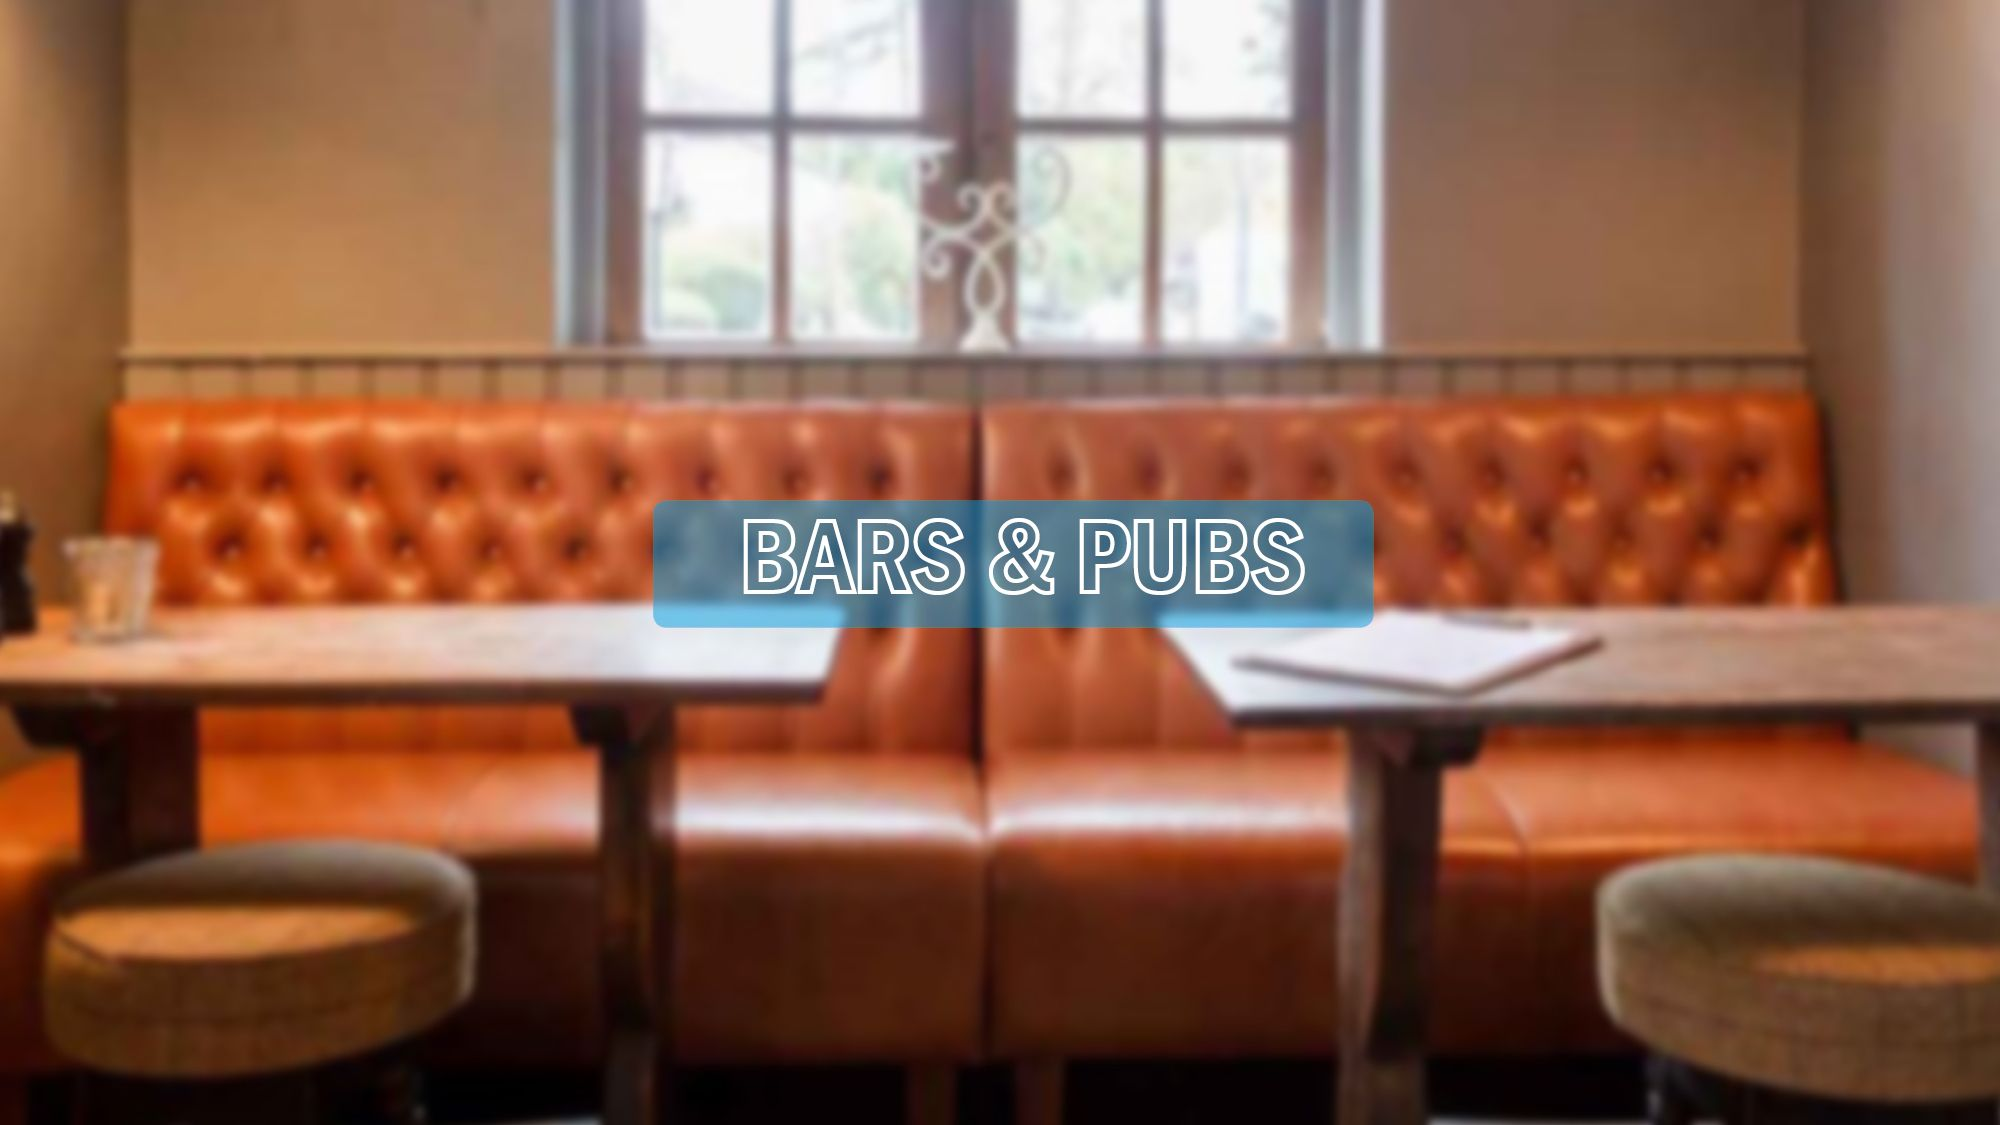 At Atlas Contract Furniture We Supply Quality Custom Made Furniture For Bars And Pubs Across The Uk In Both Bars Bar Seating Banquette Seating Pub Furniture